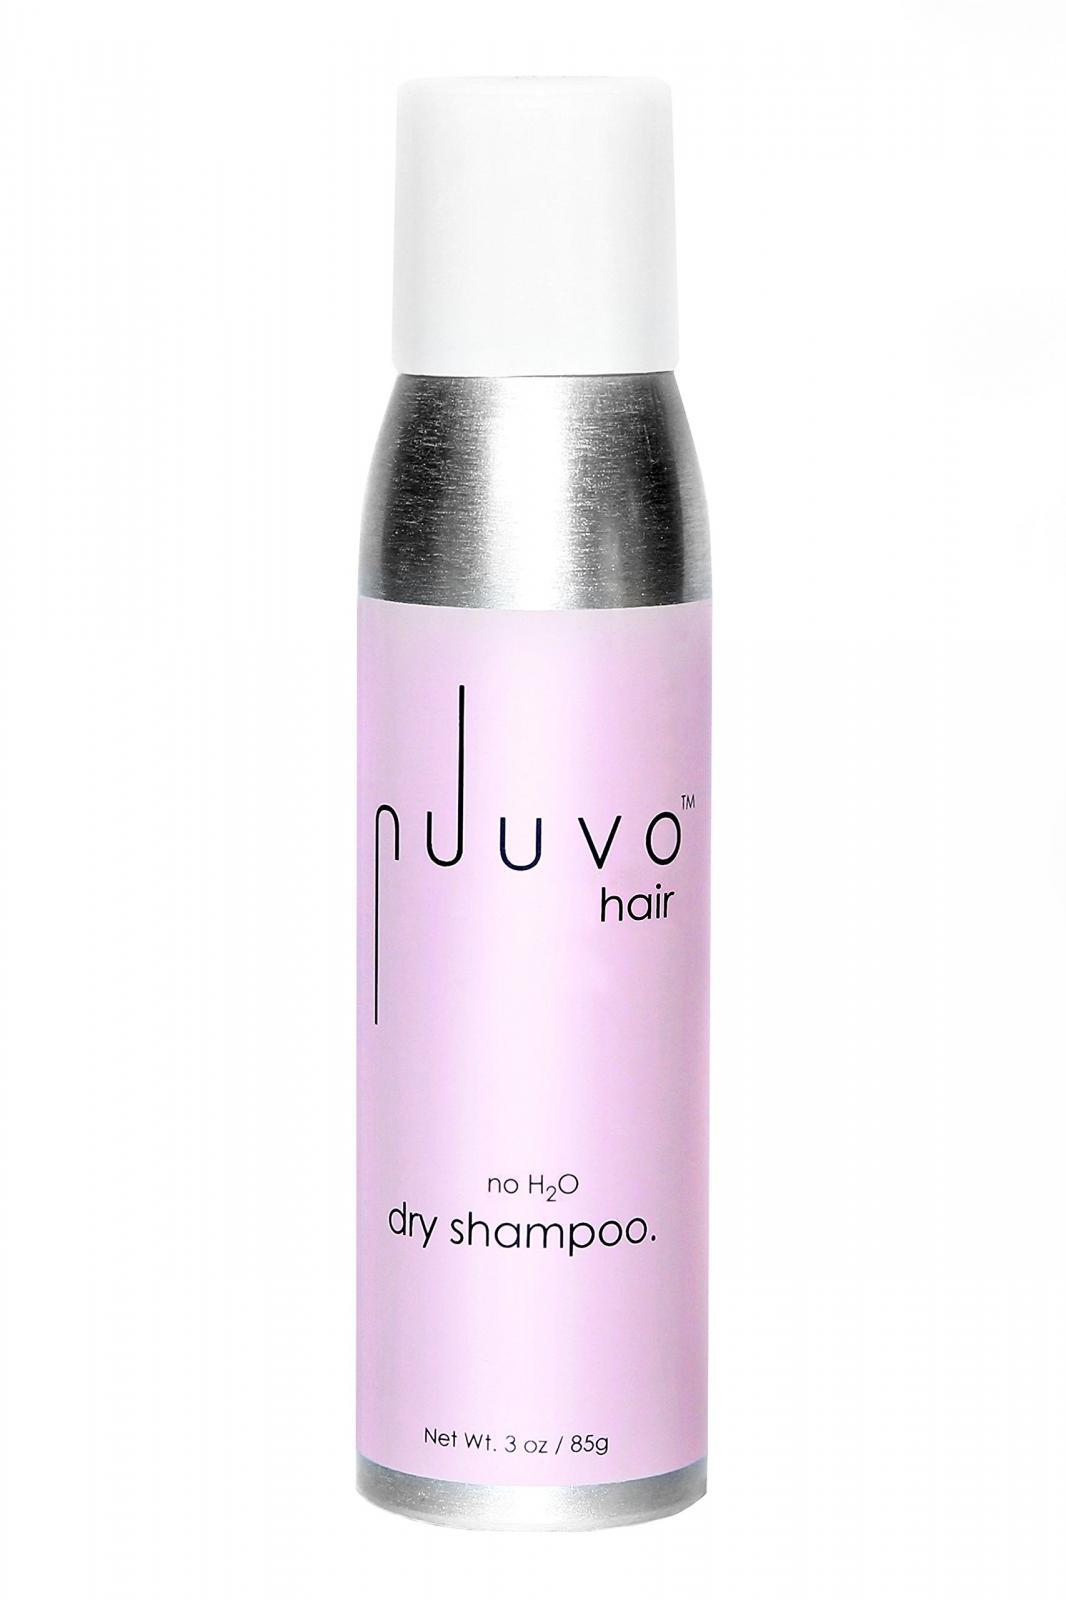 Nuuvo Haircare High Performance No H2O Dry Shampoo - Paraben + Sulfate Free